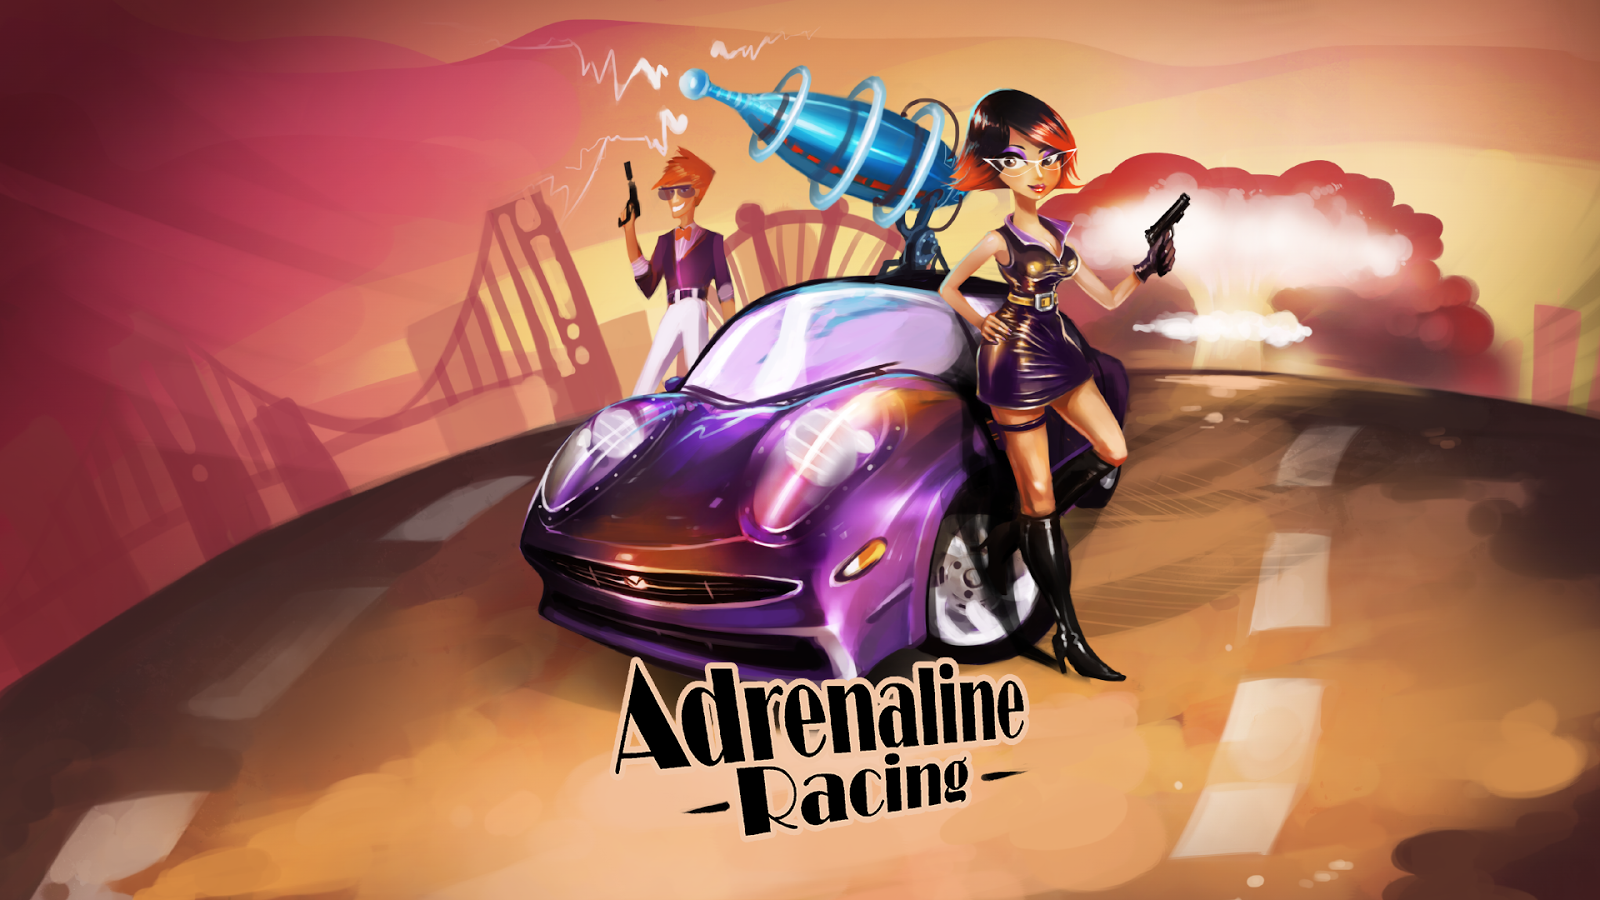 Adrenaline Racing Screenshot 4